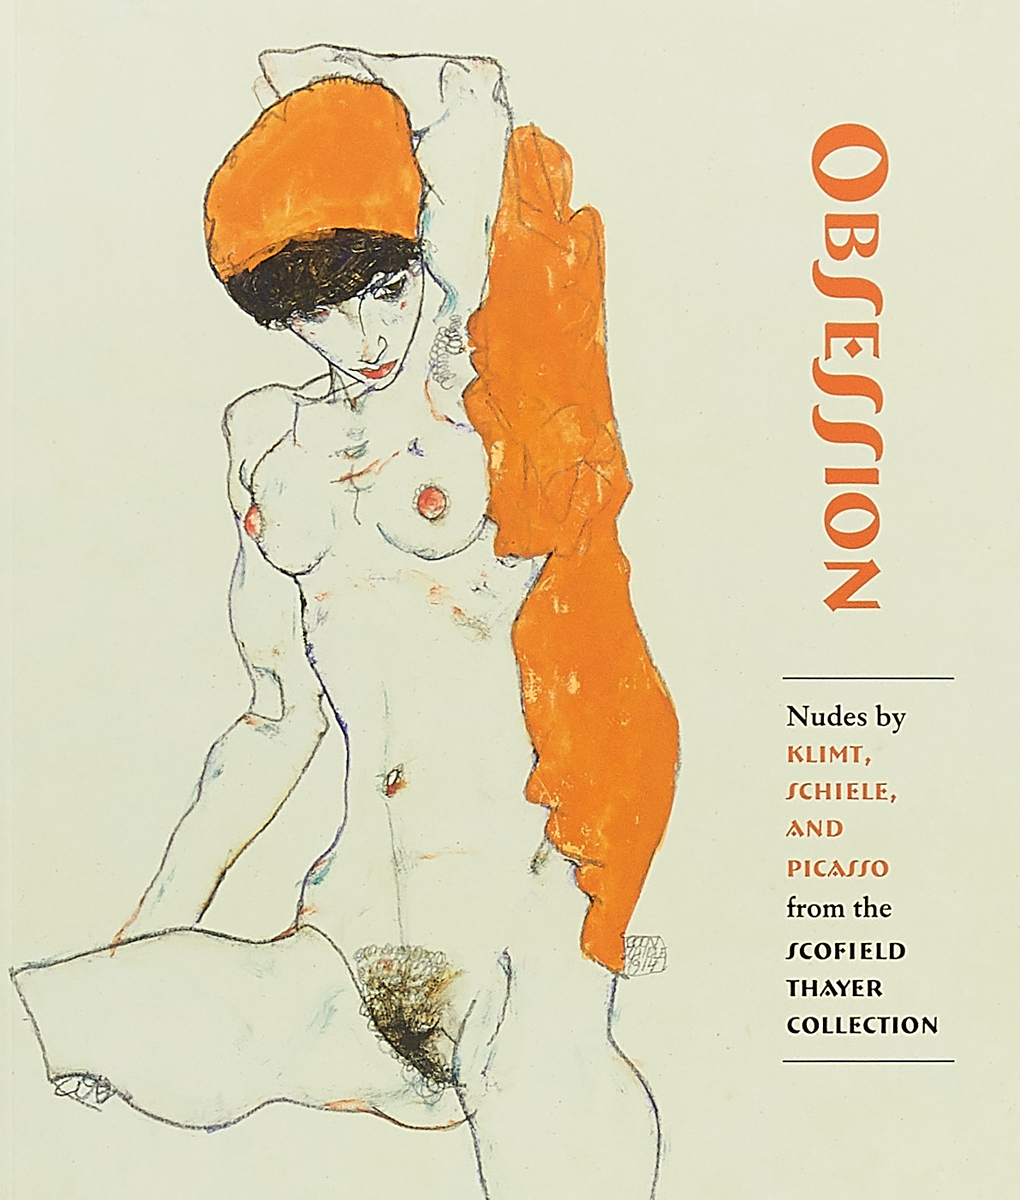 Obsession: Nudes by Klimt, Schiele, and Picasso from the Scofield Thayer Collection danny ayers beginning xml